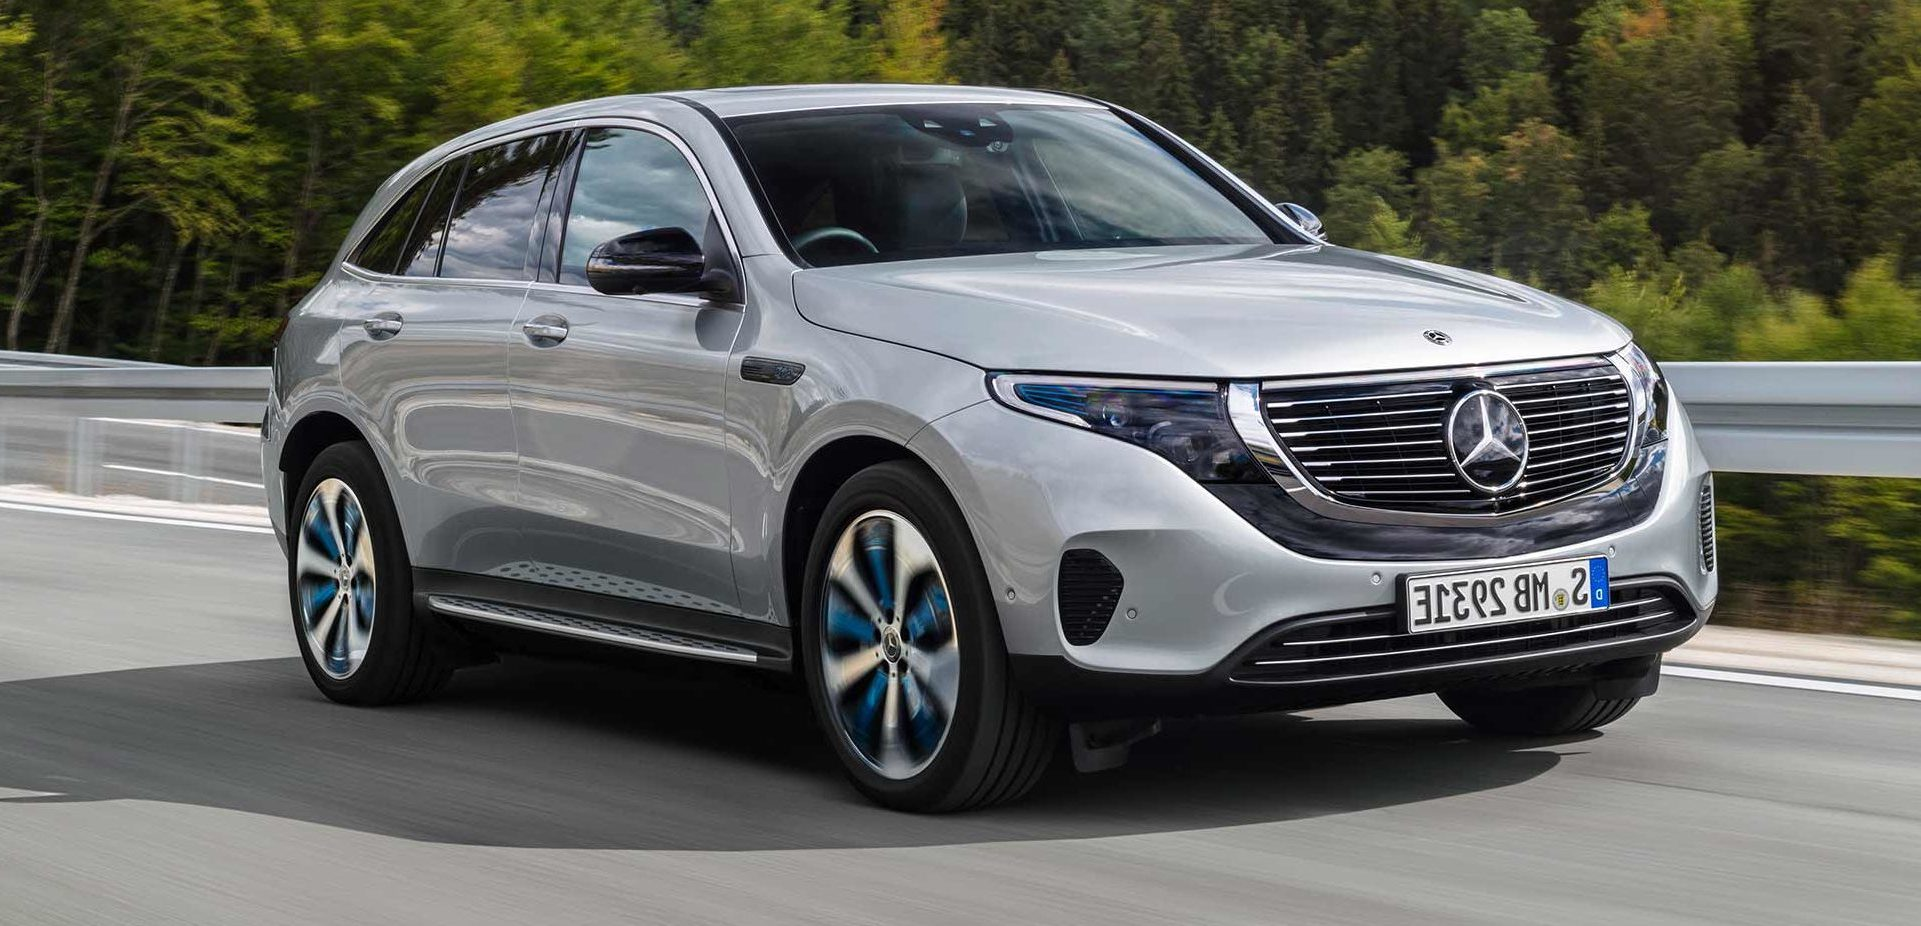 tesla rival mercedes-benz eqc to adopt gradual production ramp over